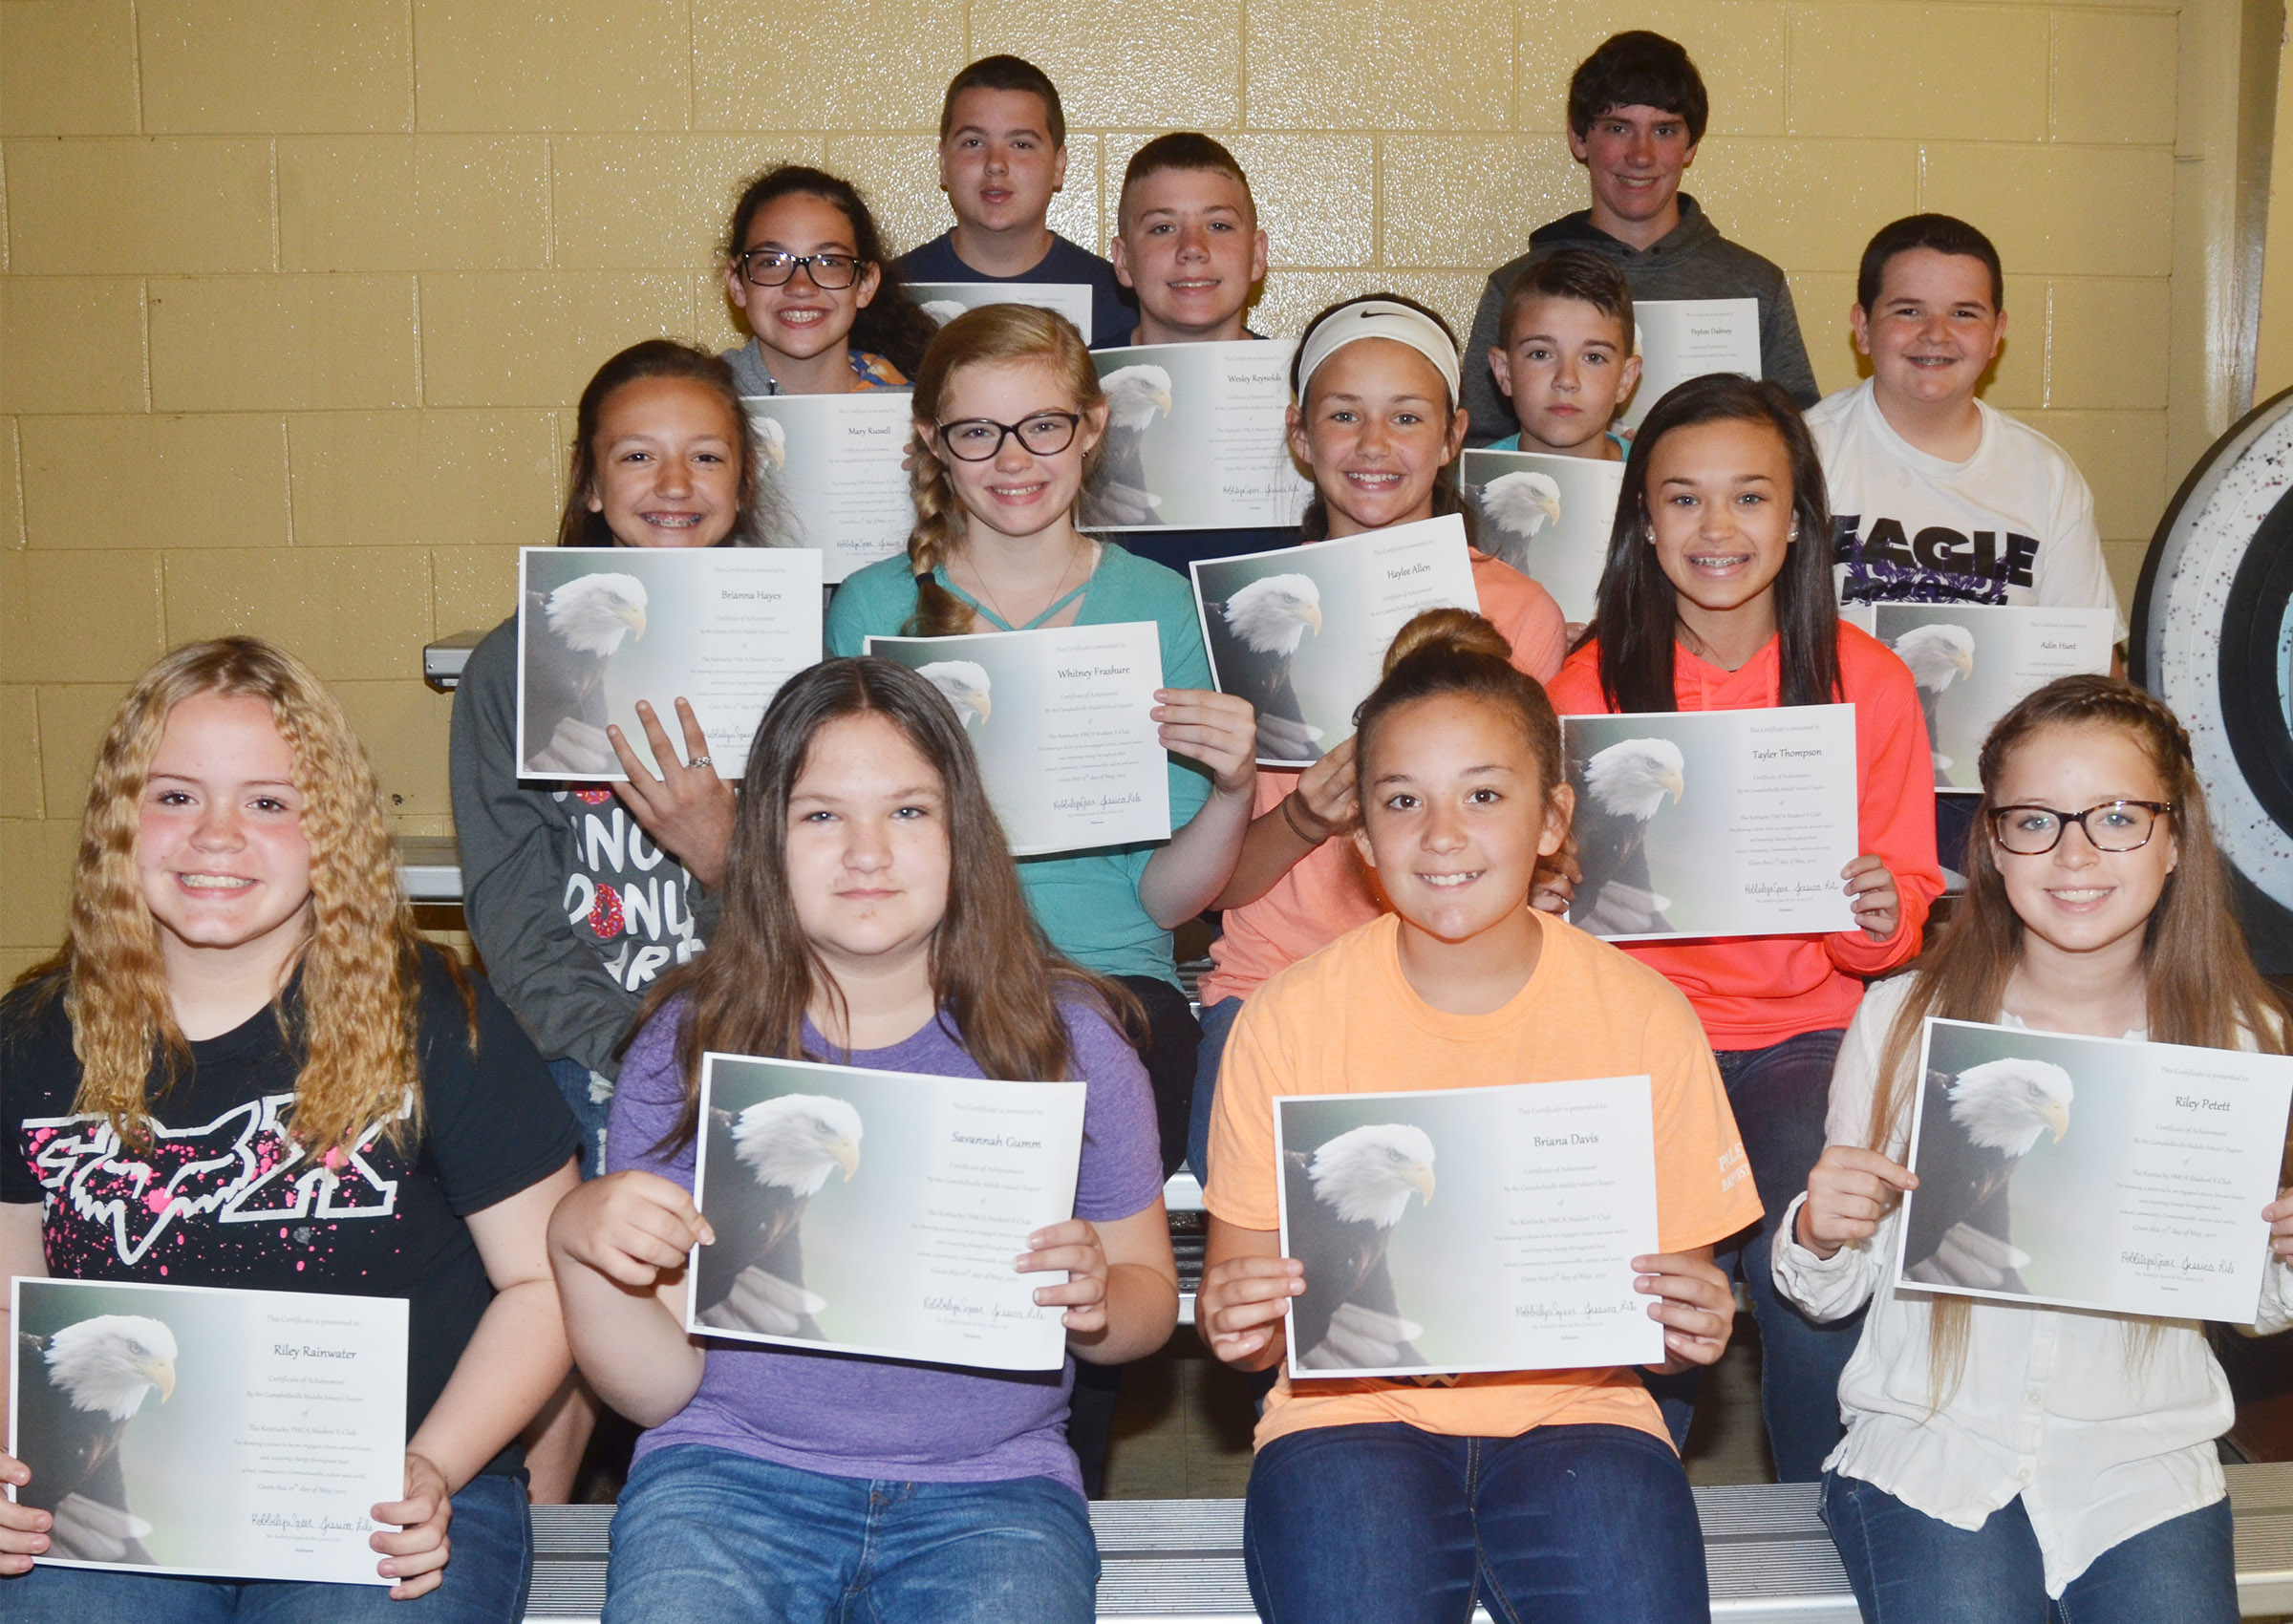 Y-Club awards went to, from left, front, seventh-graders Riley Rainwater and Savannah Gumm, sixth-grader Briana Davis and seventh-grader Rylee Petett. Second row, sixth-graders Bri Hayes, Whitney Frashure and Haylee Allen and seventh-grader Tayler Thompson. Third row, sixth-graders Mary Russell, Wesley Reynolds and Bryce Newton and seventh-grader Adin Hunt. Back, seventh-graders Jack Sabo and Peyton Dabney.